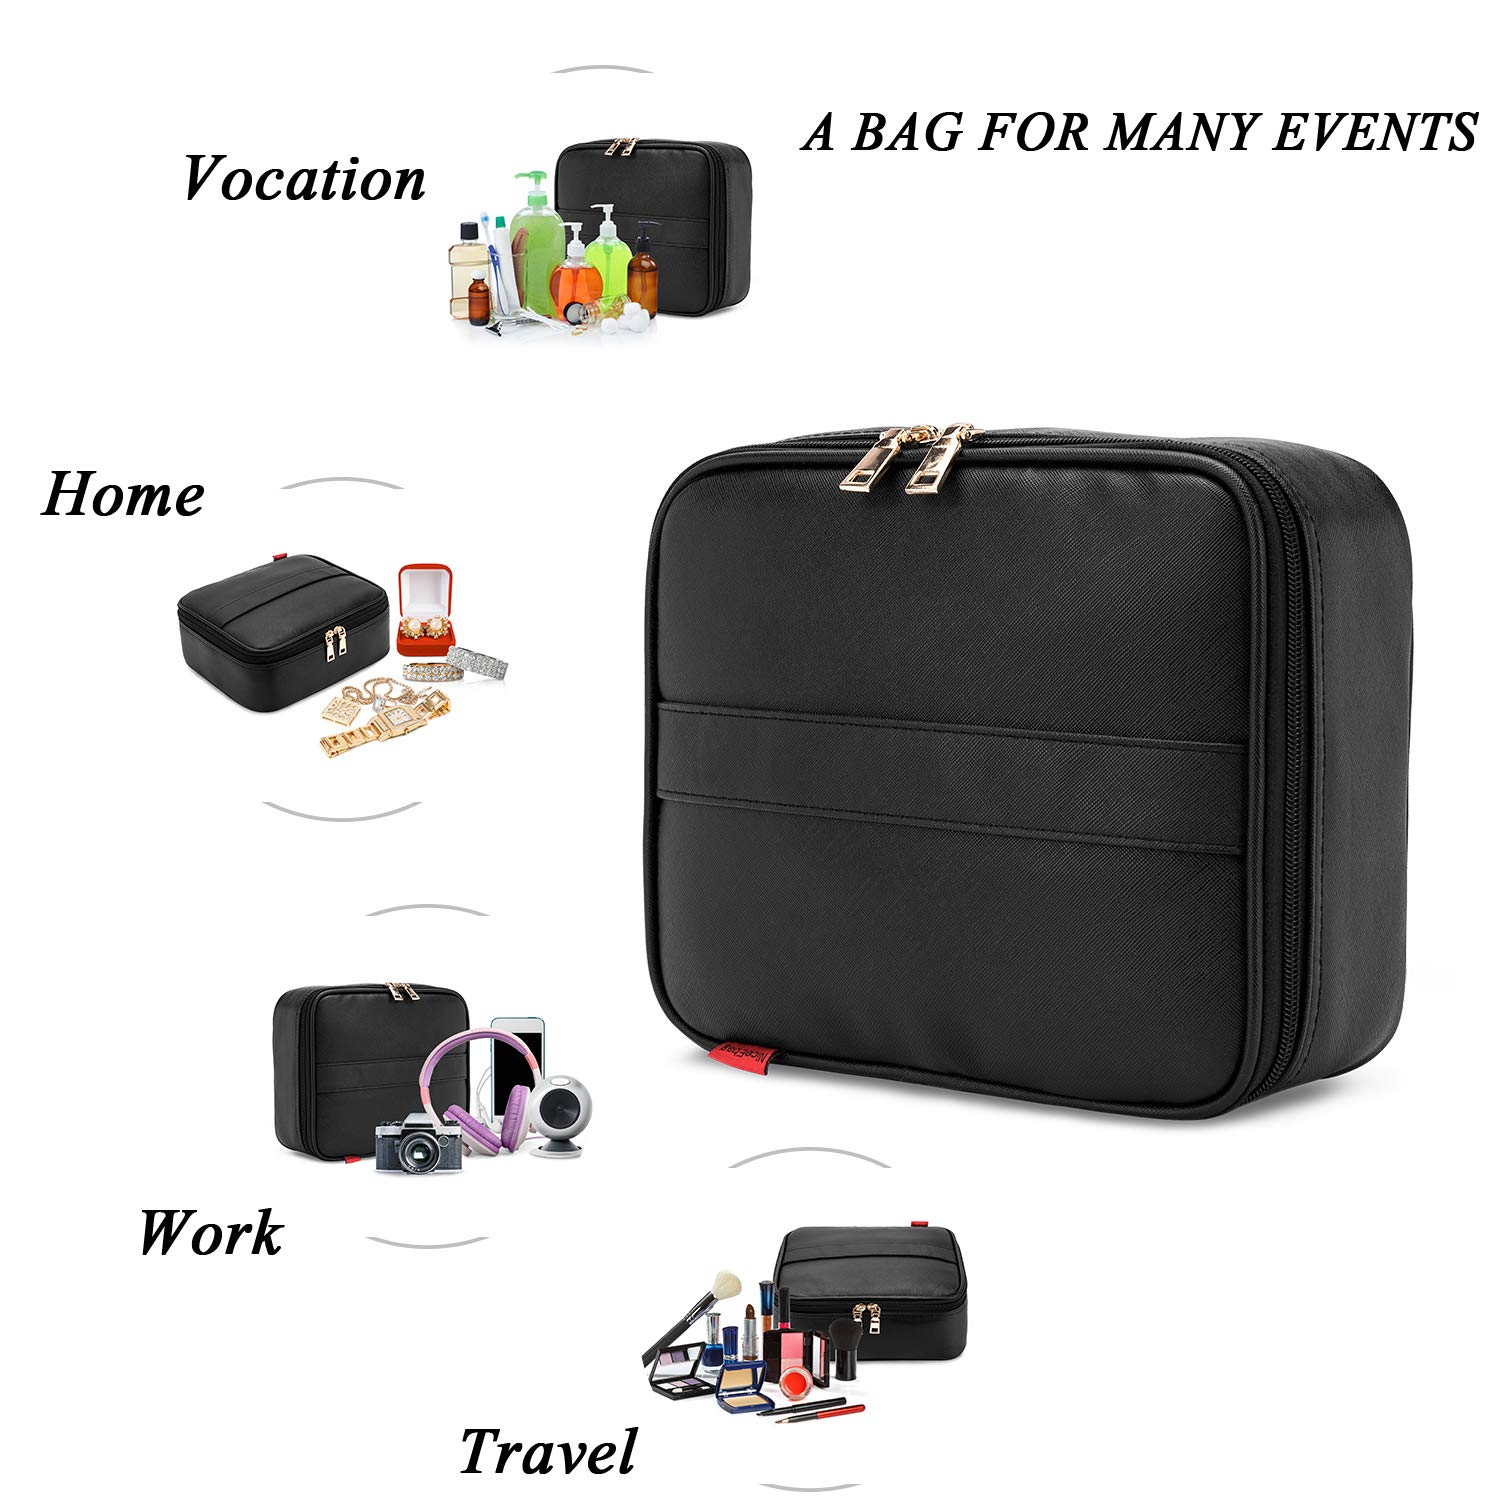 Makeup Bag NiceEbag Travel Cosmetic Bag for Women and Men Cute Makeup Case Leather Cosmetic Case with Adjustable Padded Dividers for Cosmetics Make Up Tools Toiletry Jewelry,Black by NiceEbag (Image #6)